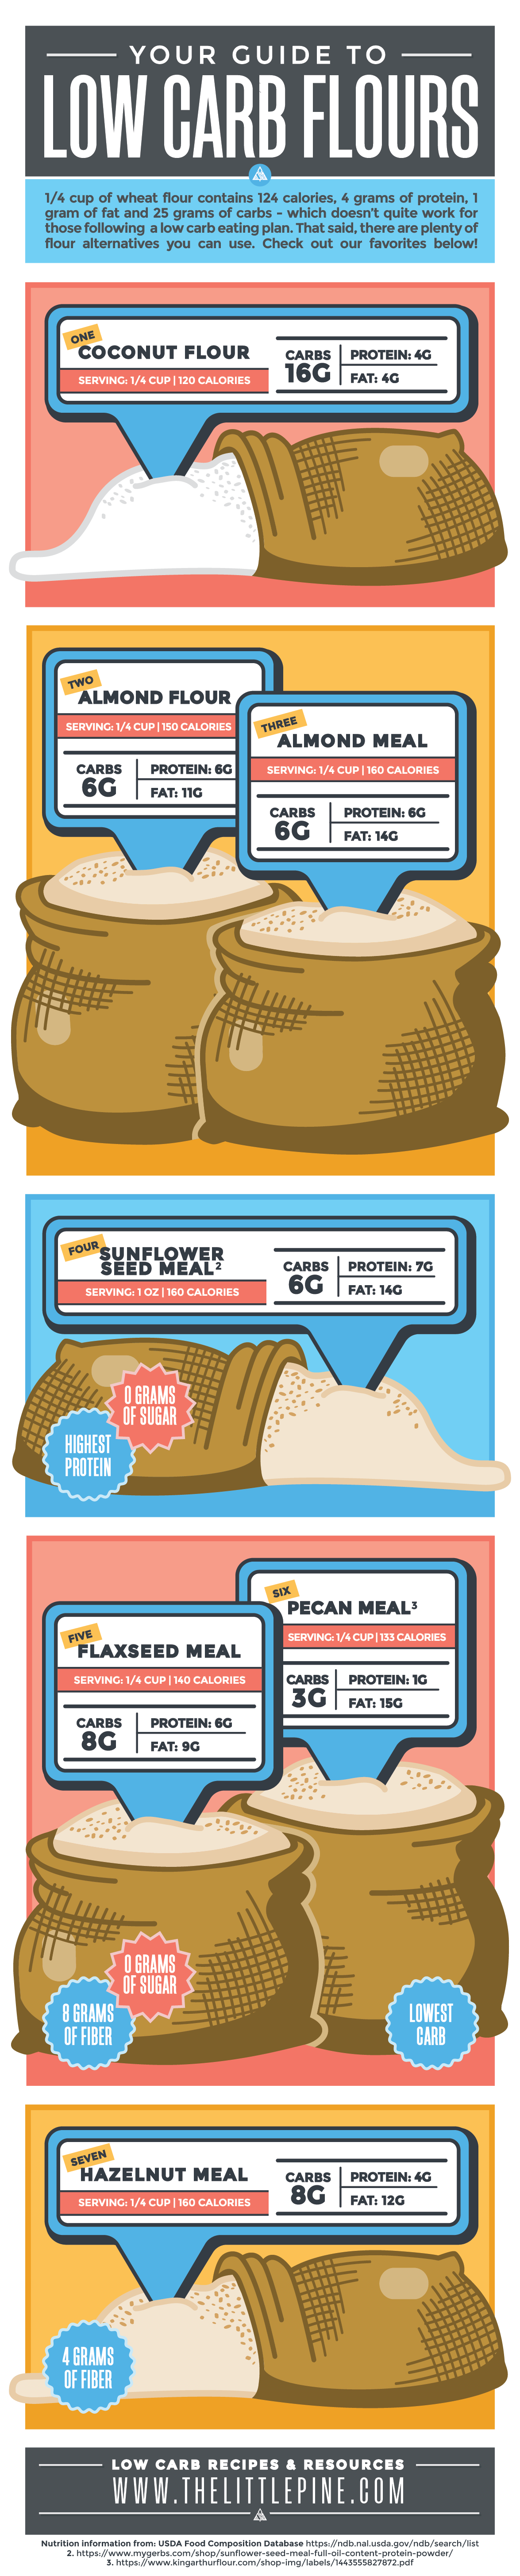 graphic illustration breakdown of low carb flours